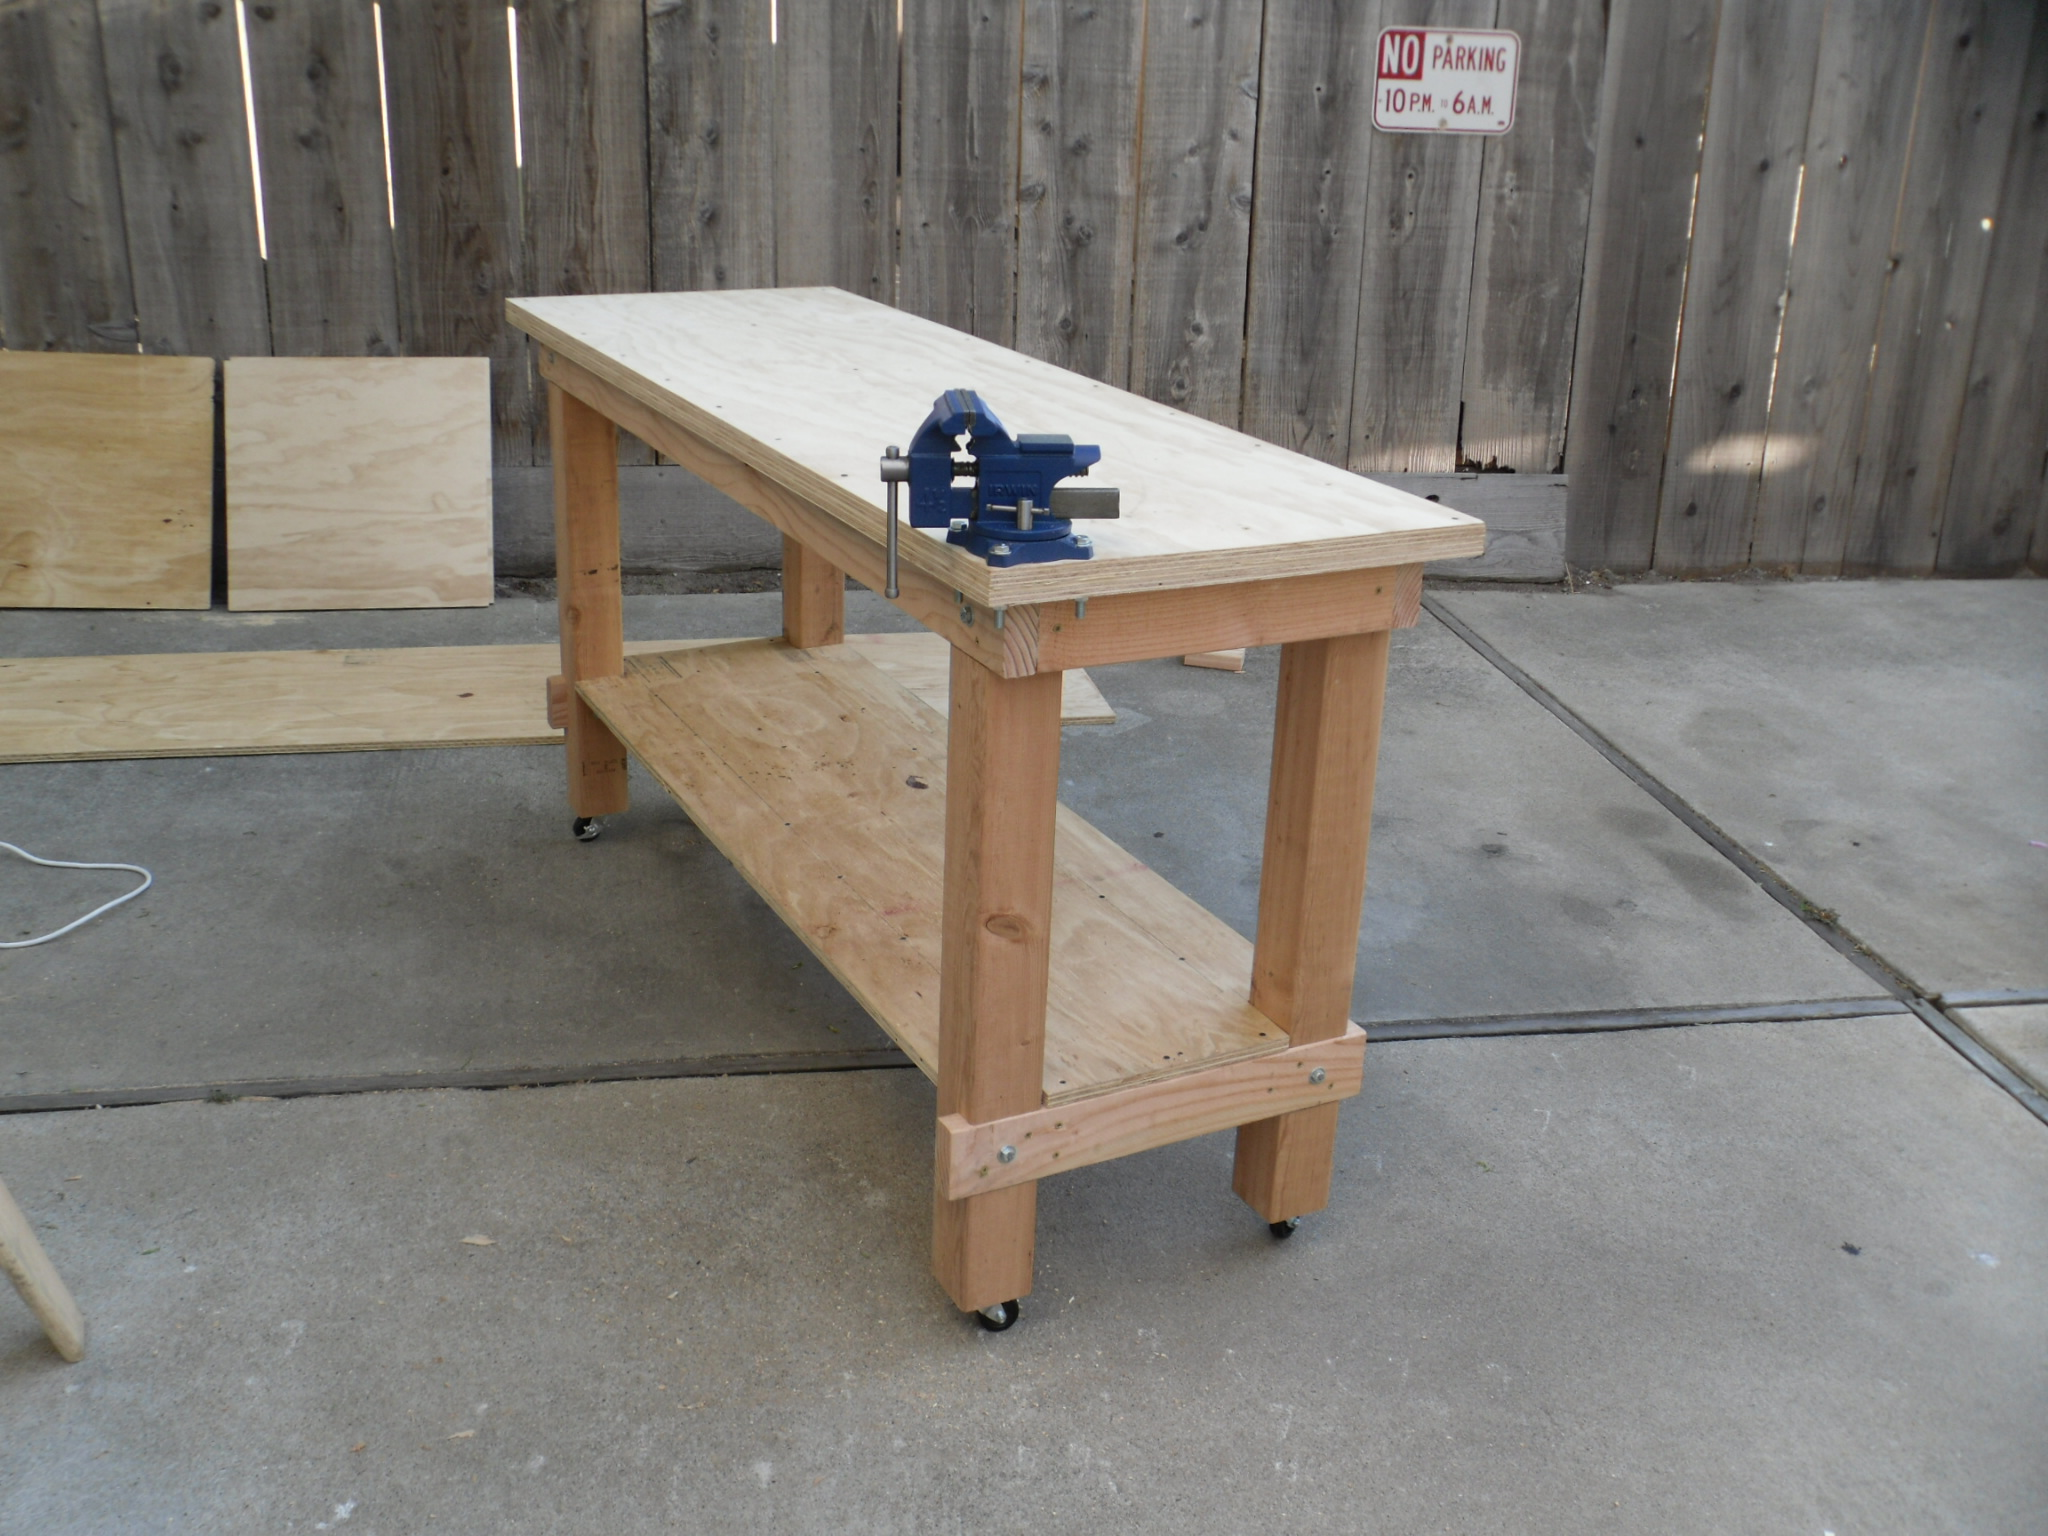 Work Table Design Bicycle Repair Workbench The Sustainable Cyclist